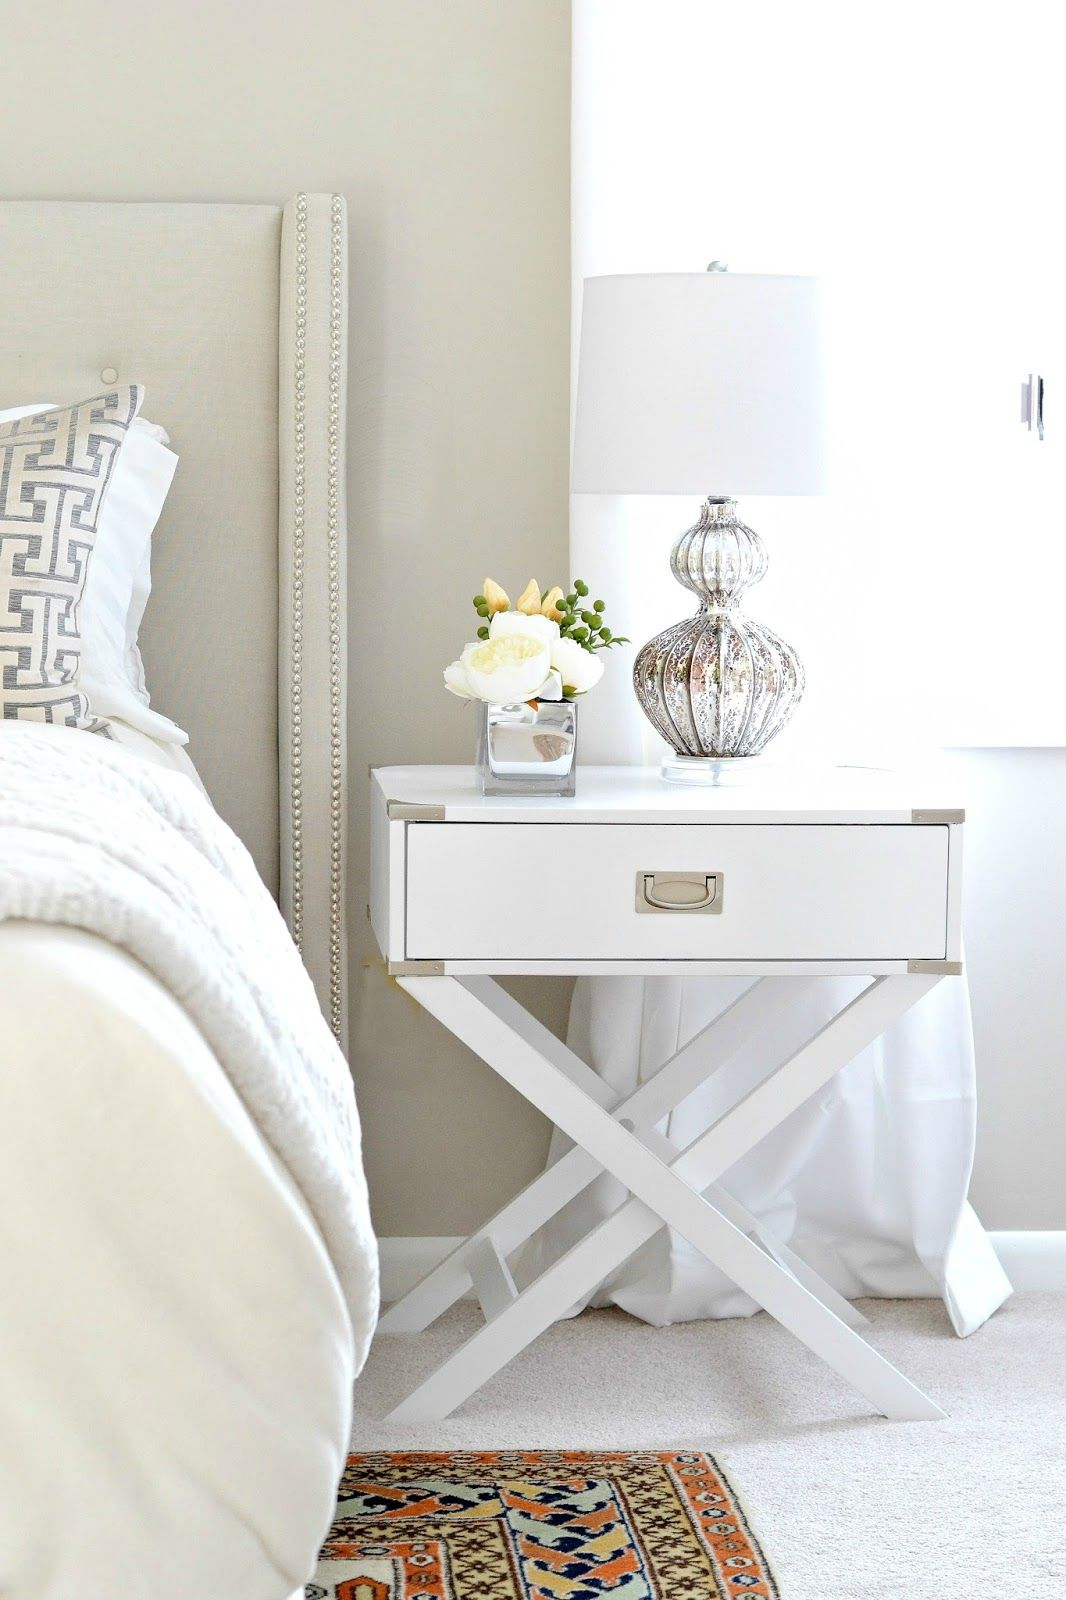 Decorating Bedroom Ideas How To Decorate A Bedroom With A Mixture Of Repurposed Thrift Store Furniture And Budget Items You Can Find Online